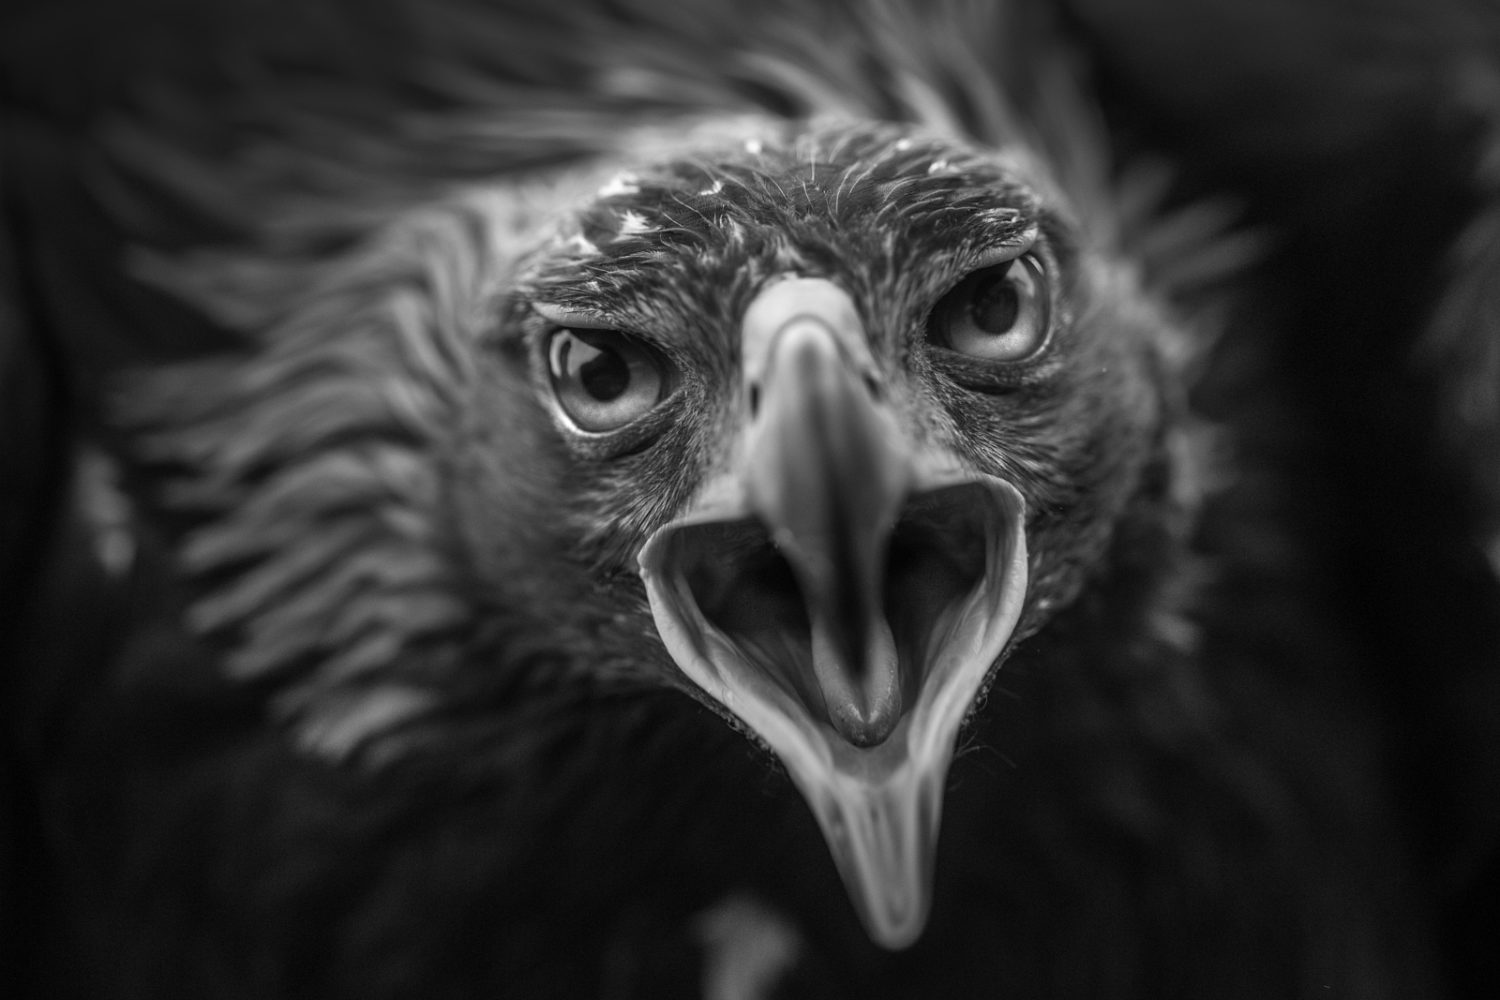 Top 20 Black and White Photos on 500px So Far This Year